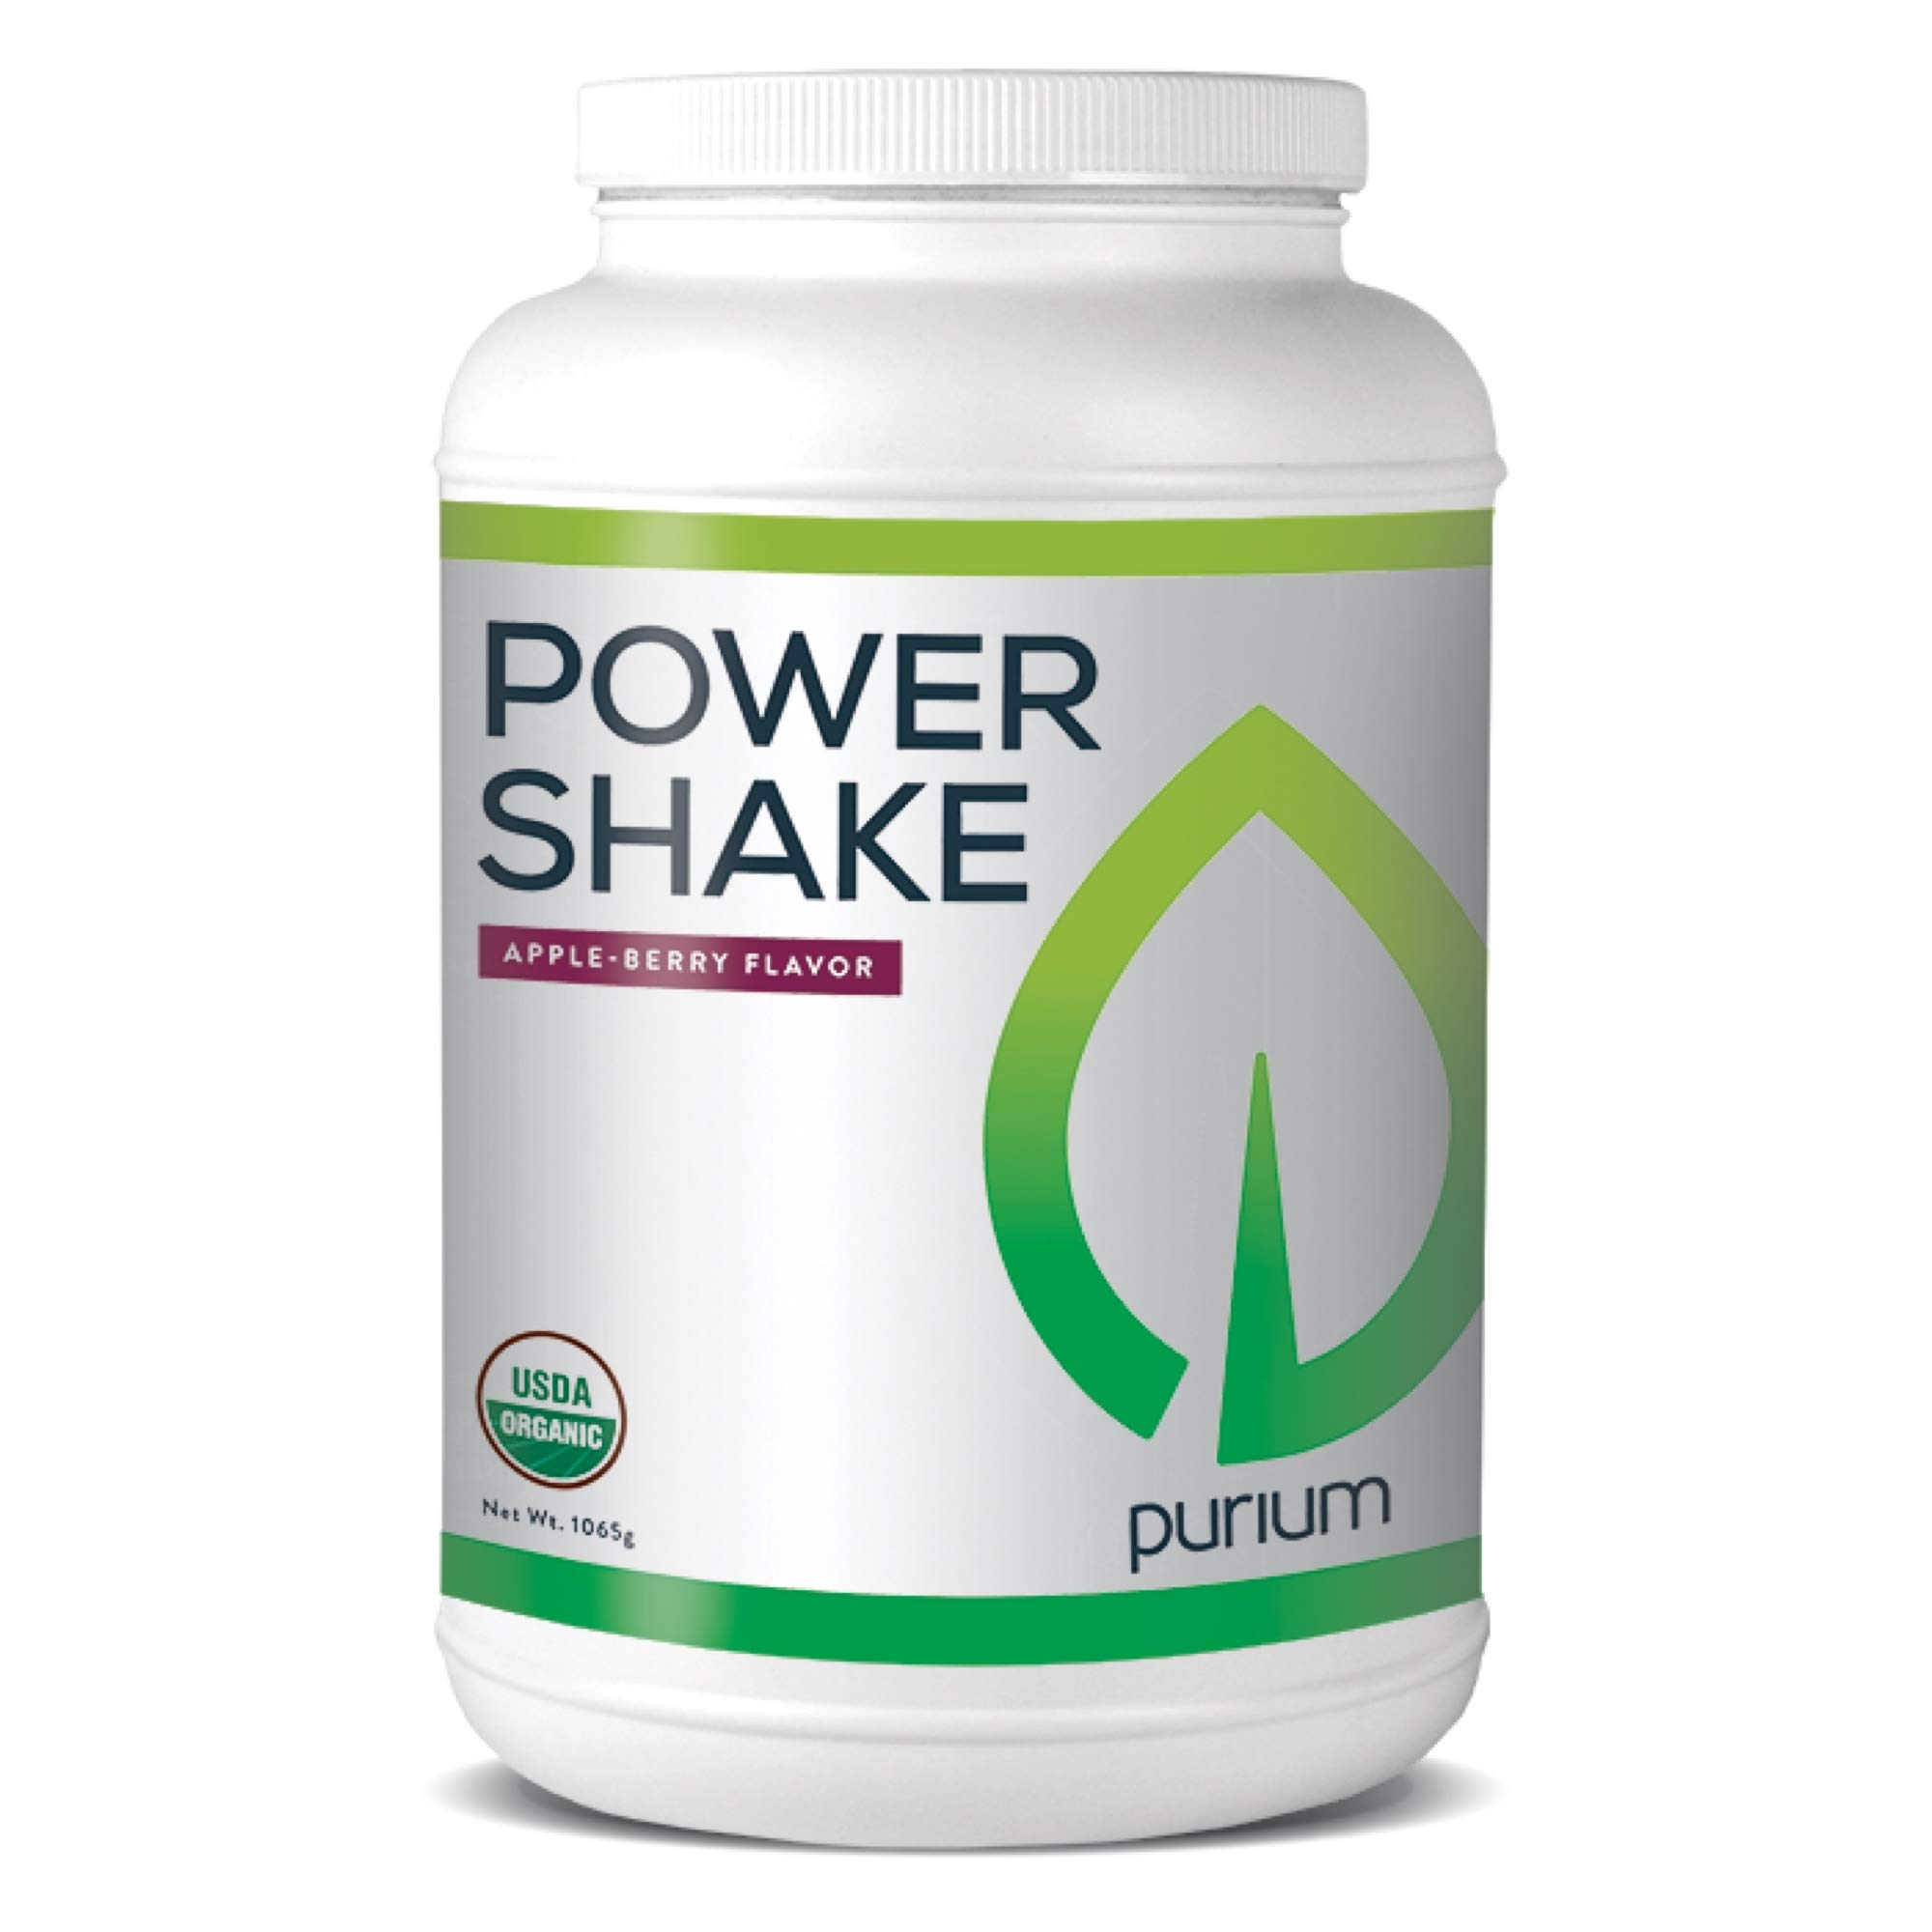 Purium Power Shake - Apple Berry Flavor - 1065 grams - Vegan Meal Replacement Powder, Protein, Vitamins & Minerals - Certified USDA Organic, Gluten Free, Kosher - 30 Servings by Purium (Image #1)